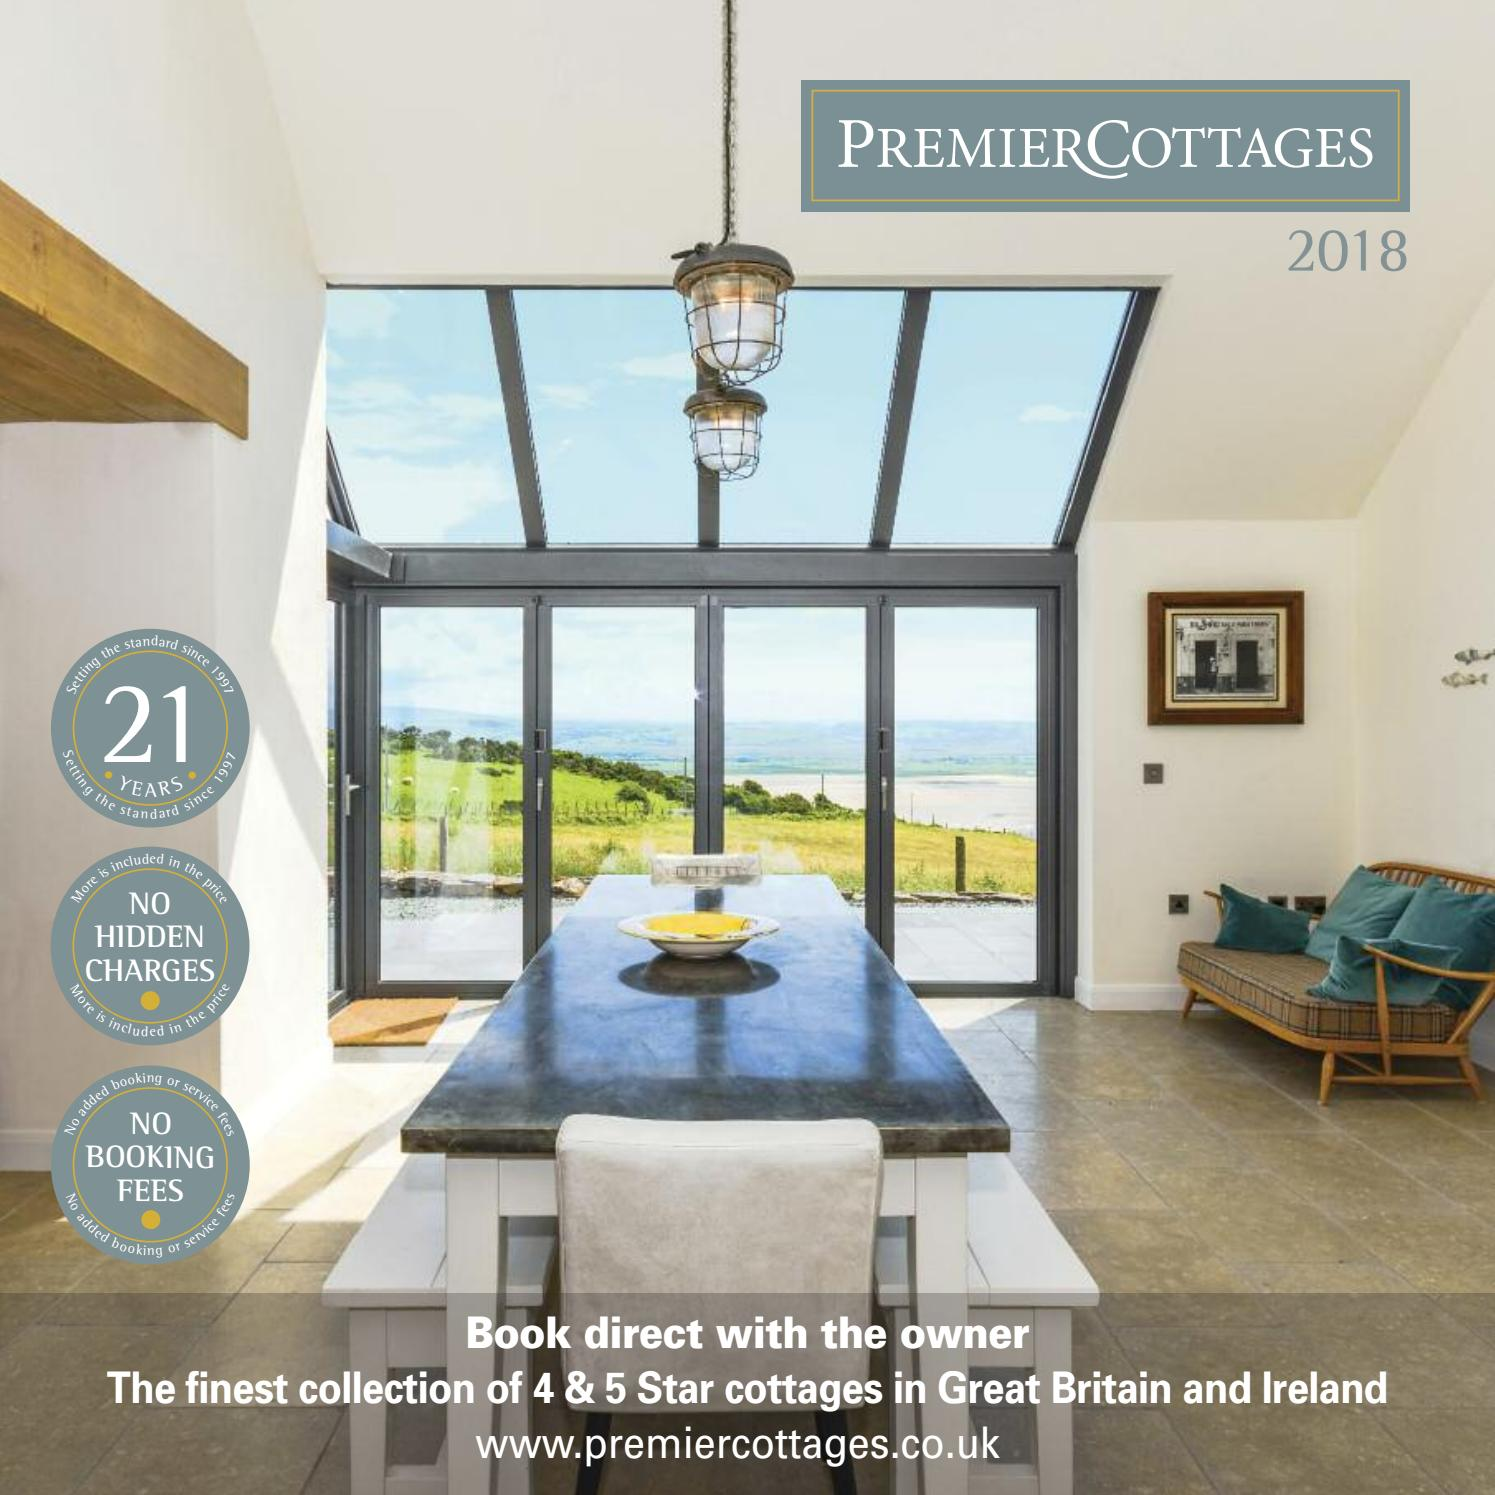 Enjoyable Premier Cottages Brochure 2018 By Web Admin Issuu Download Free Architecture Designs Scobabritishbridgeorg